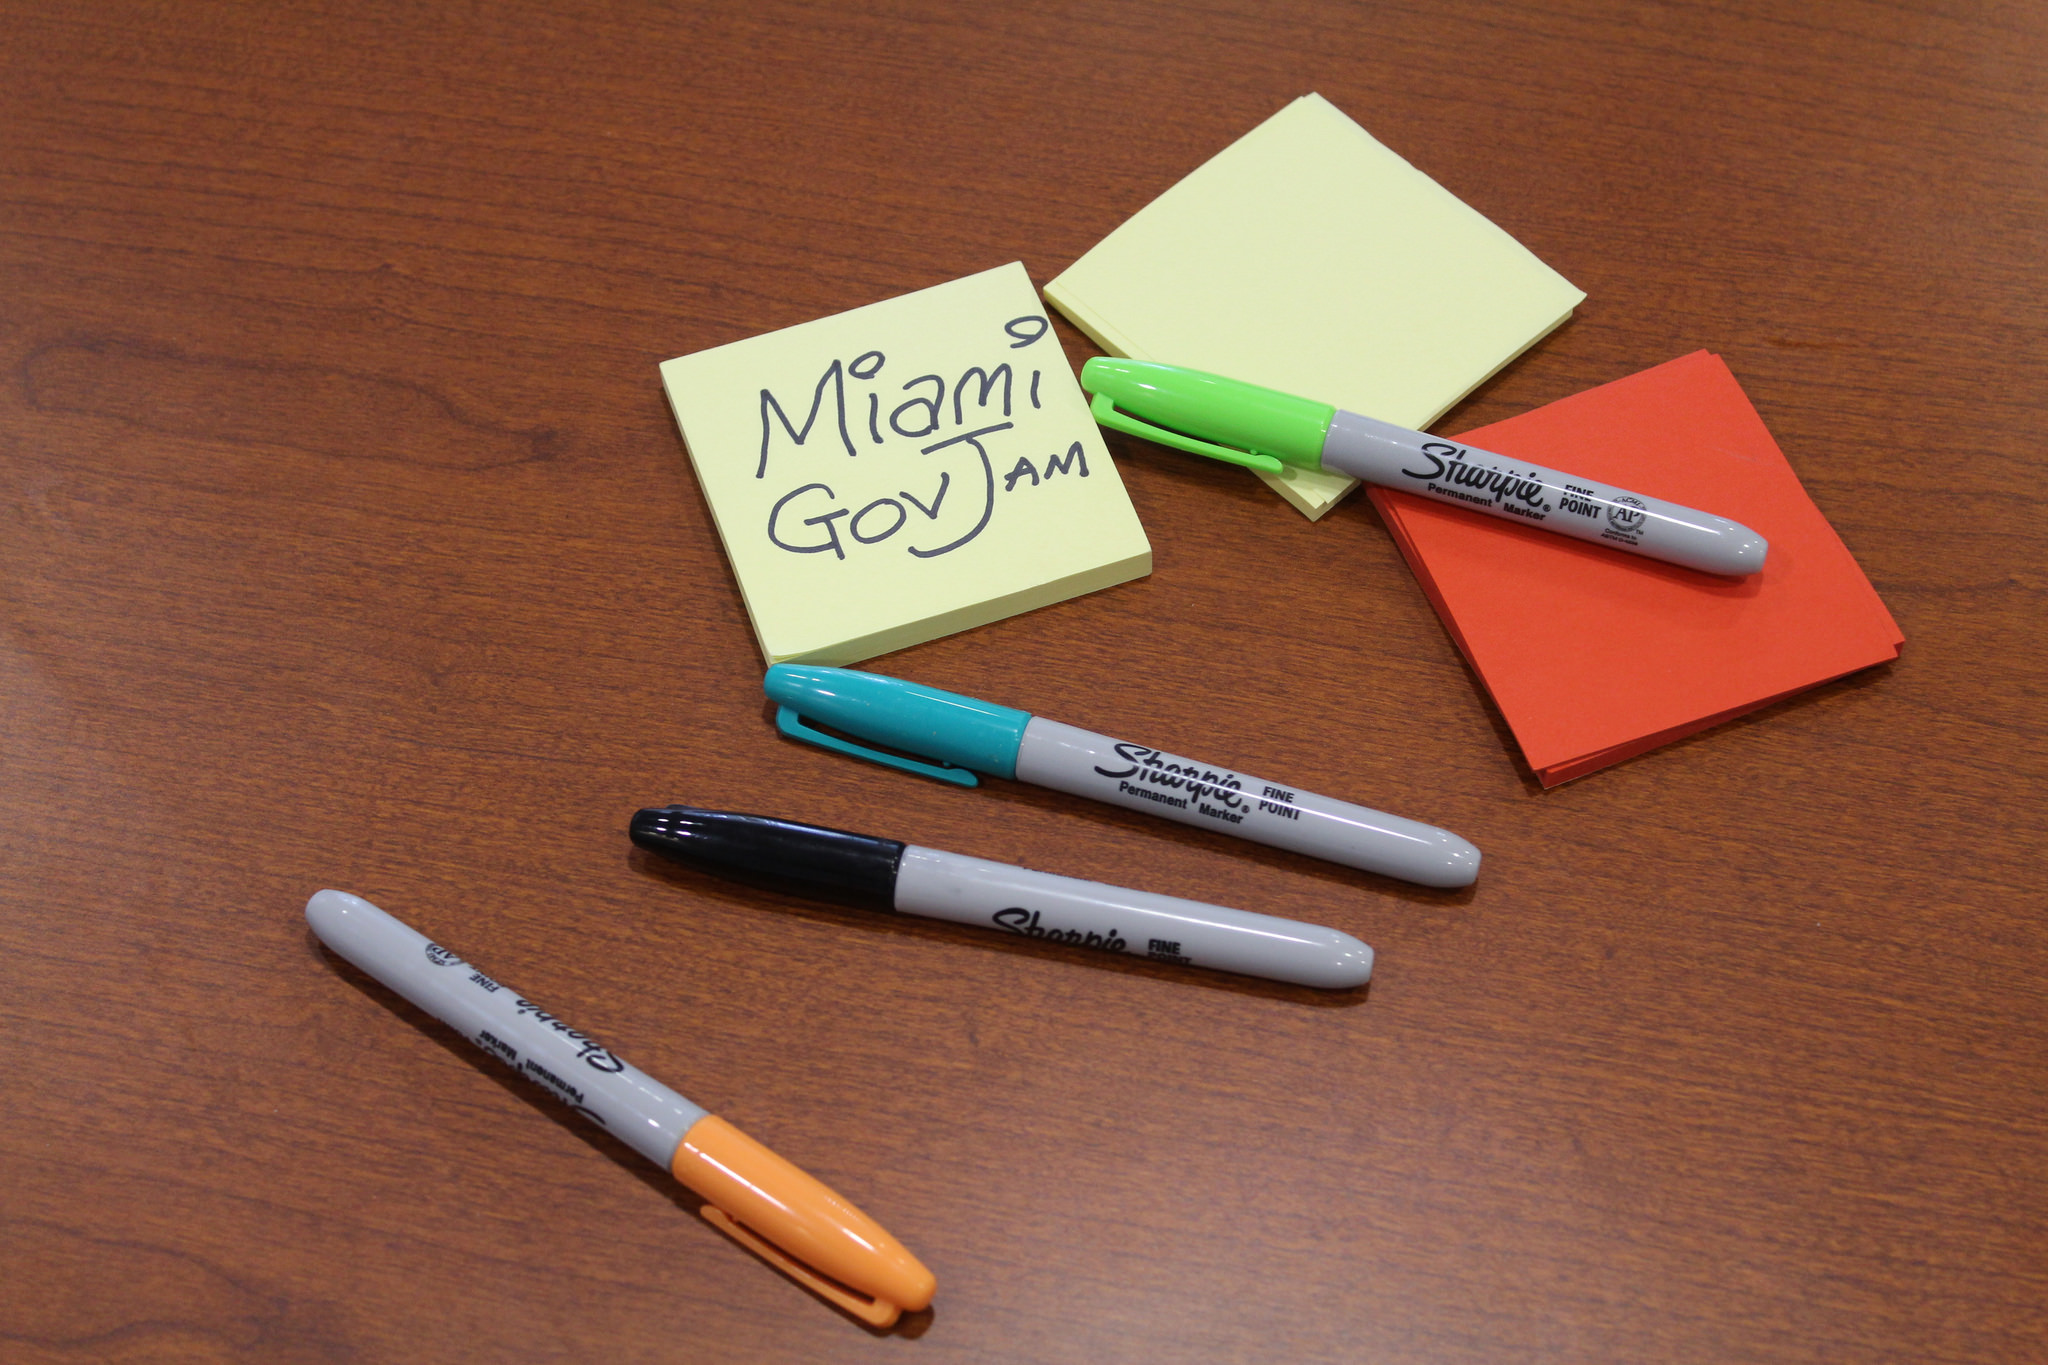 GovJam explores how design can help government better serve residents